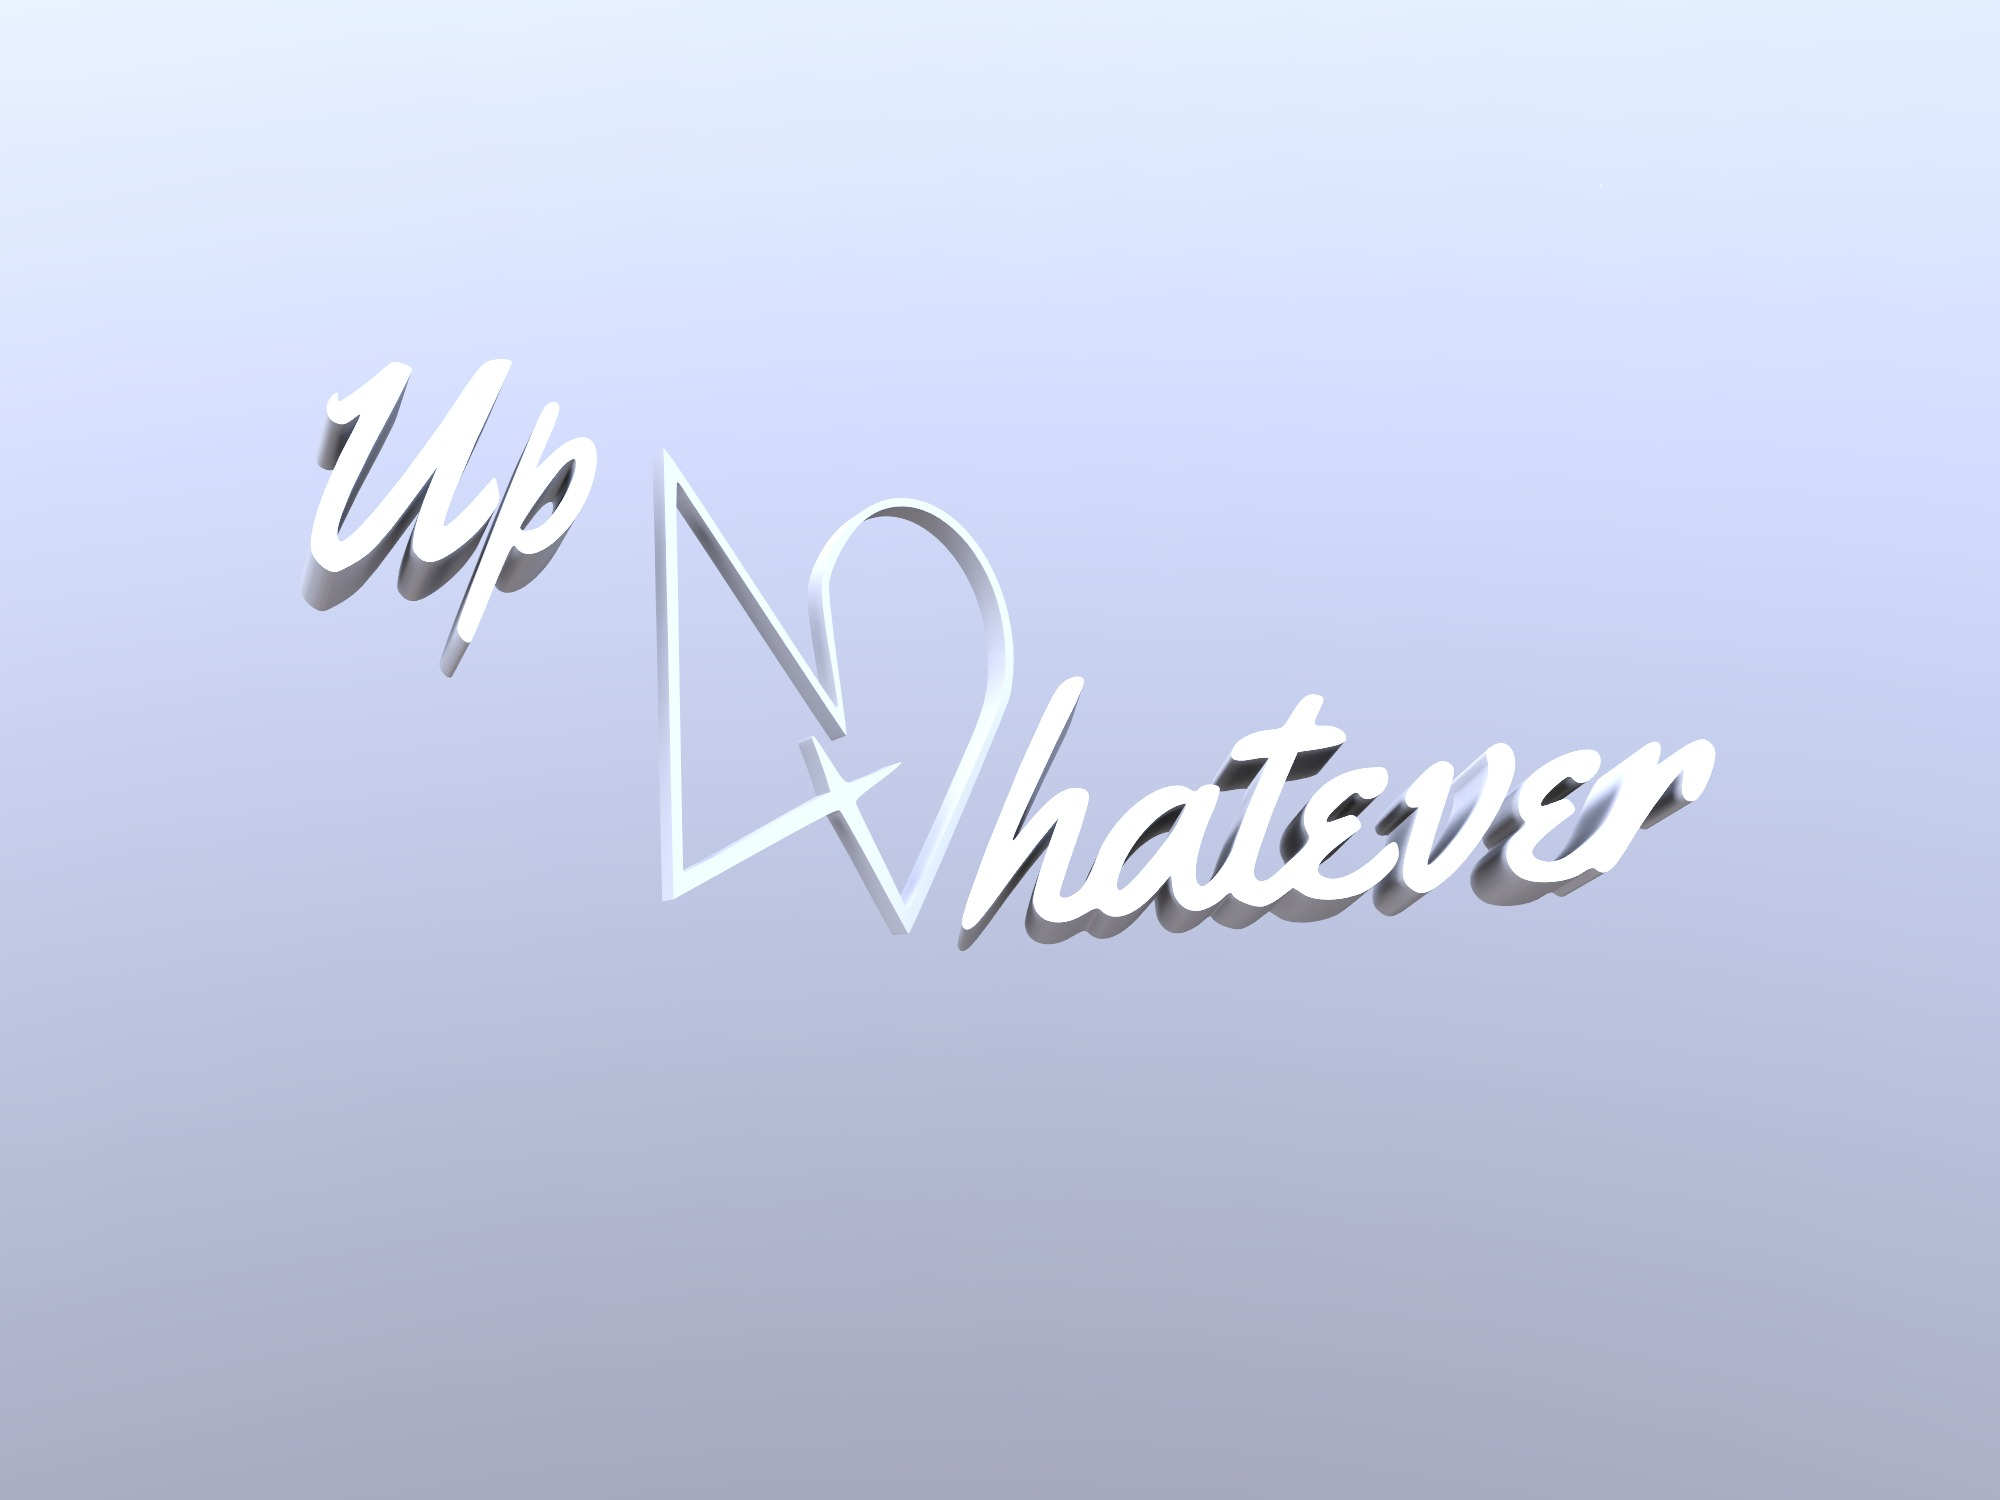 Up4Whatever - 3D design by up4whateveraz on Dec 11, 2018